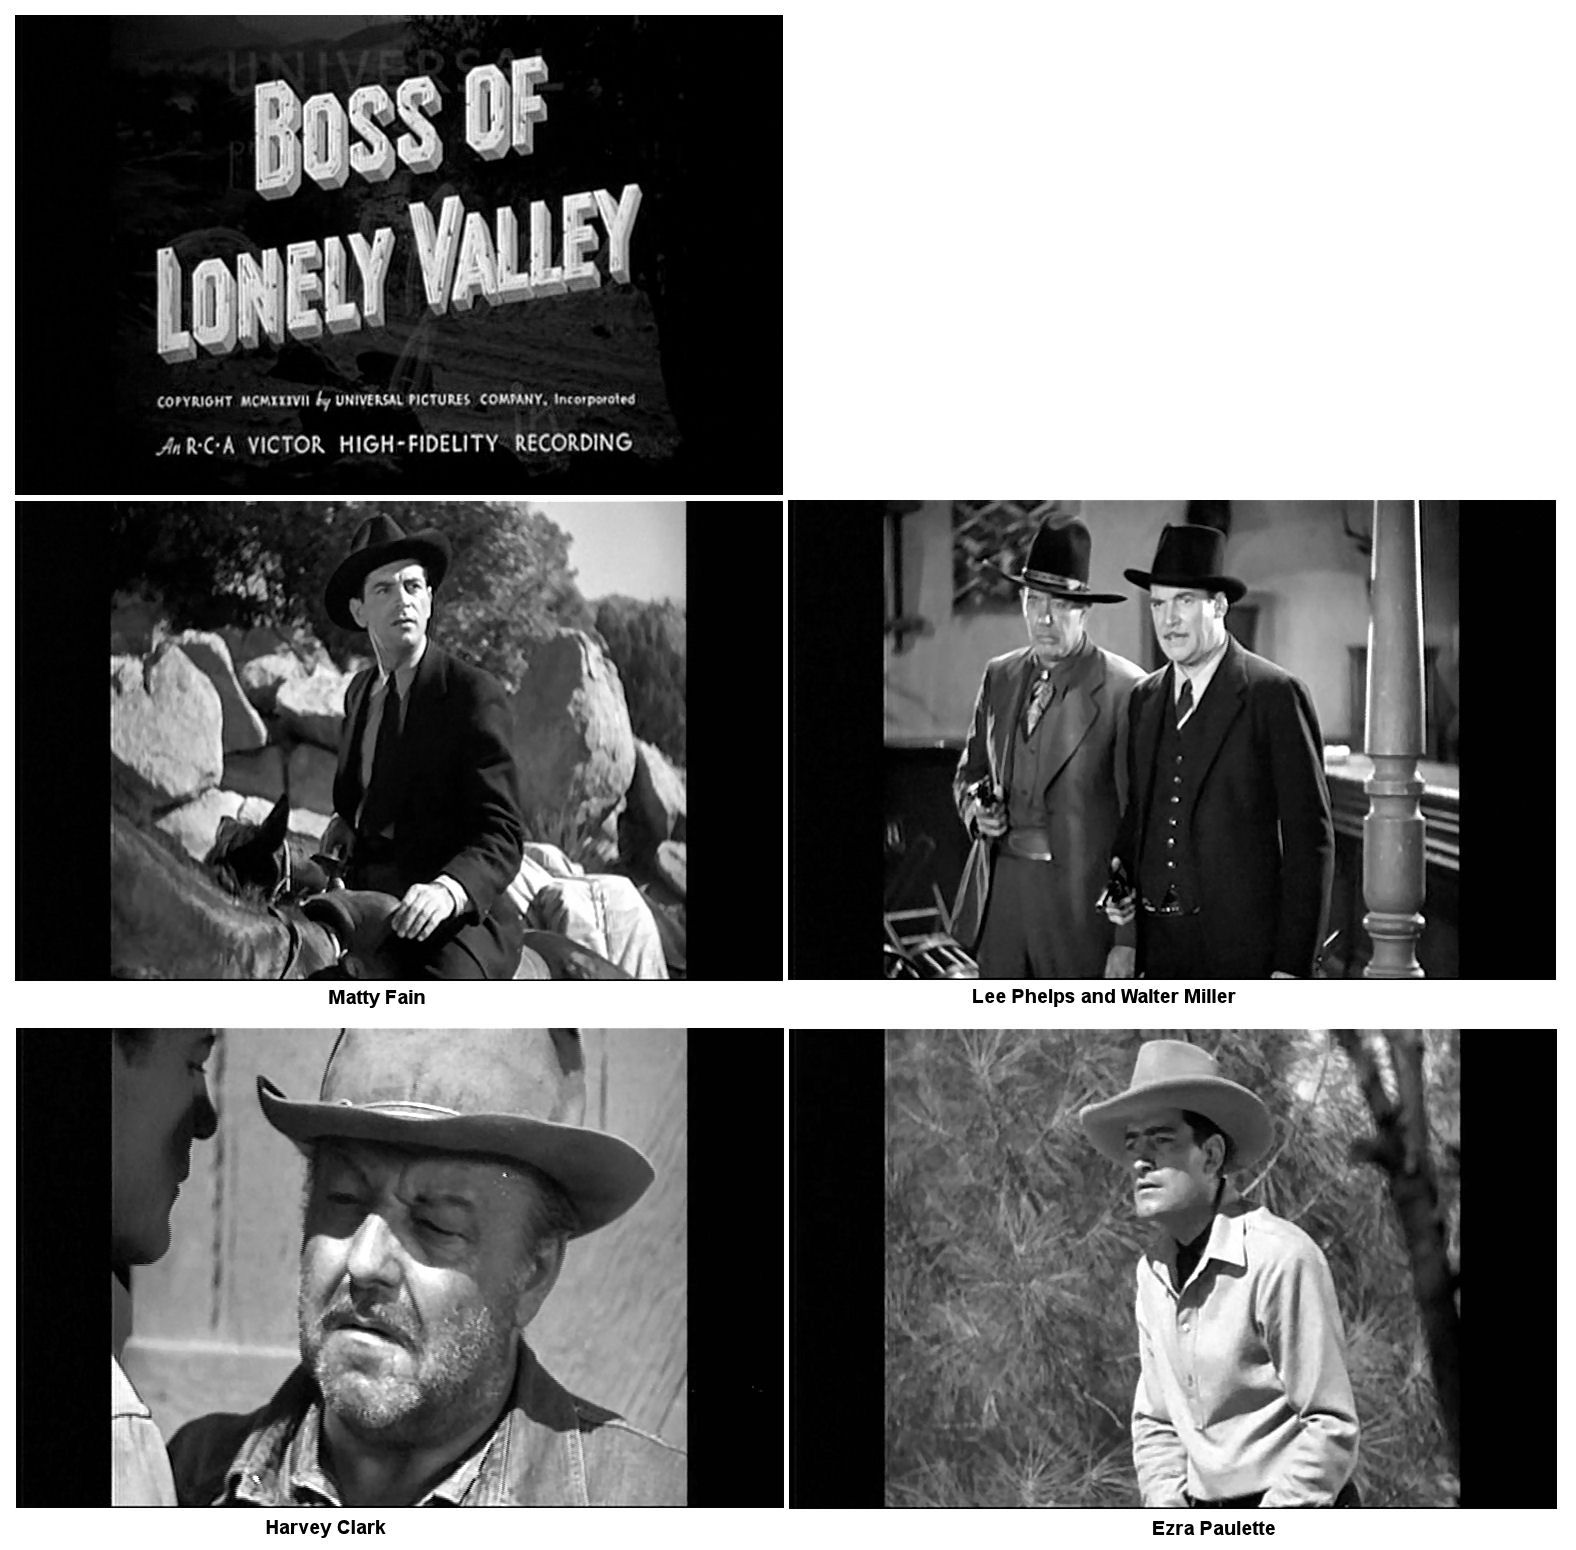 Harvey Clark, Matty Fain, Walter Miller, Ezra Paulette, and Lee Phelps in Boss of Lonely Valley (1937)